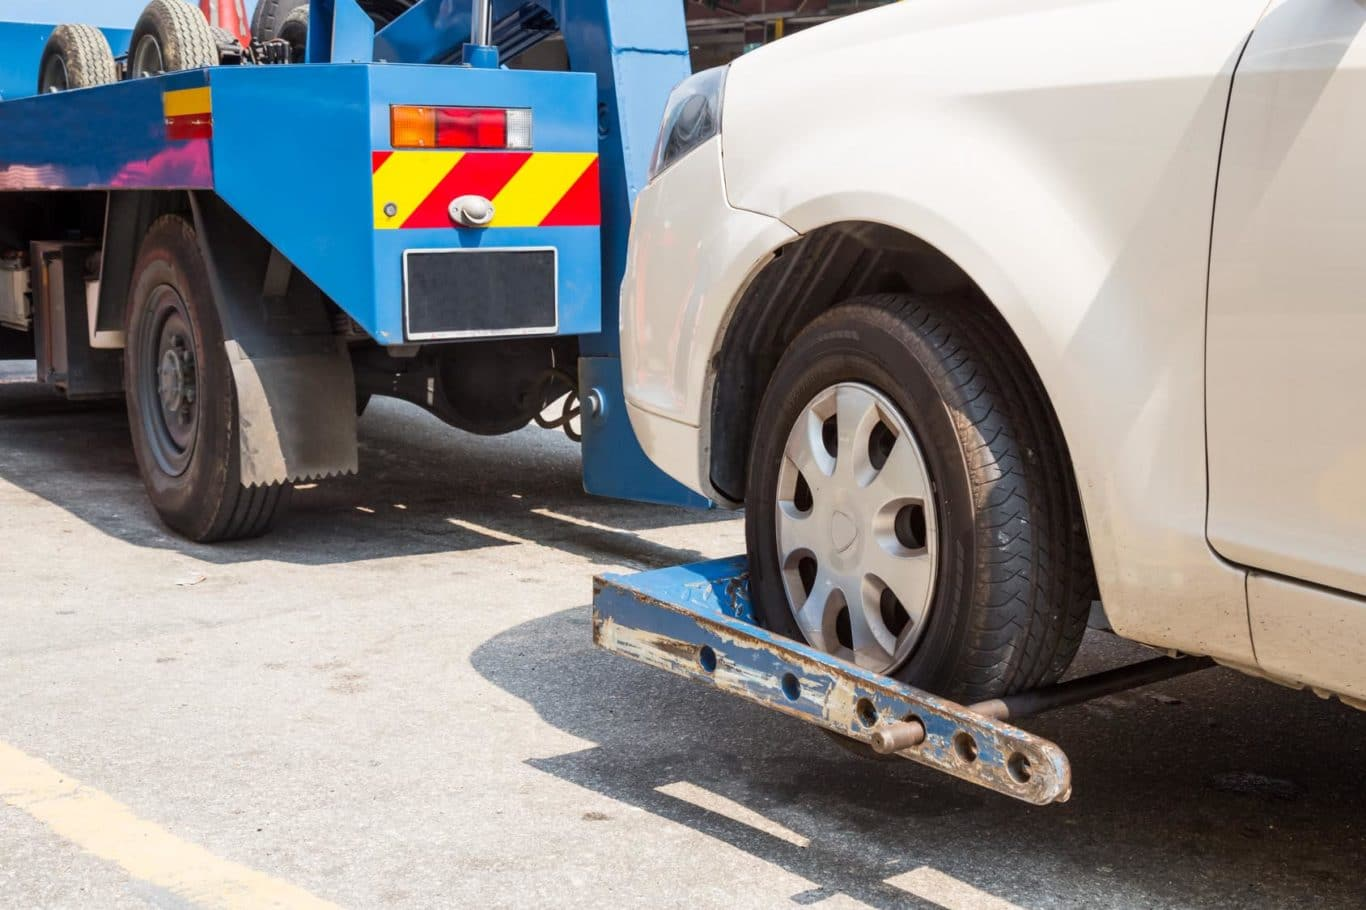 Phibsborough expert Car Recovery services